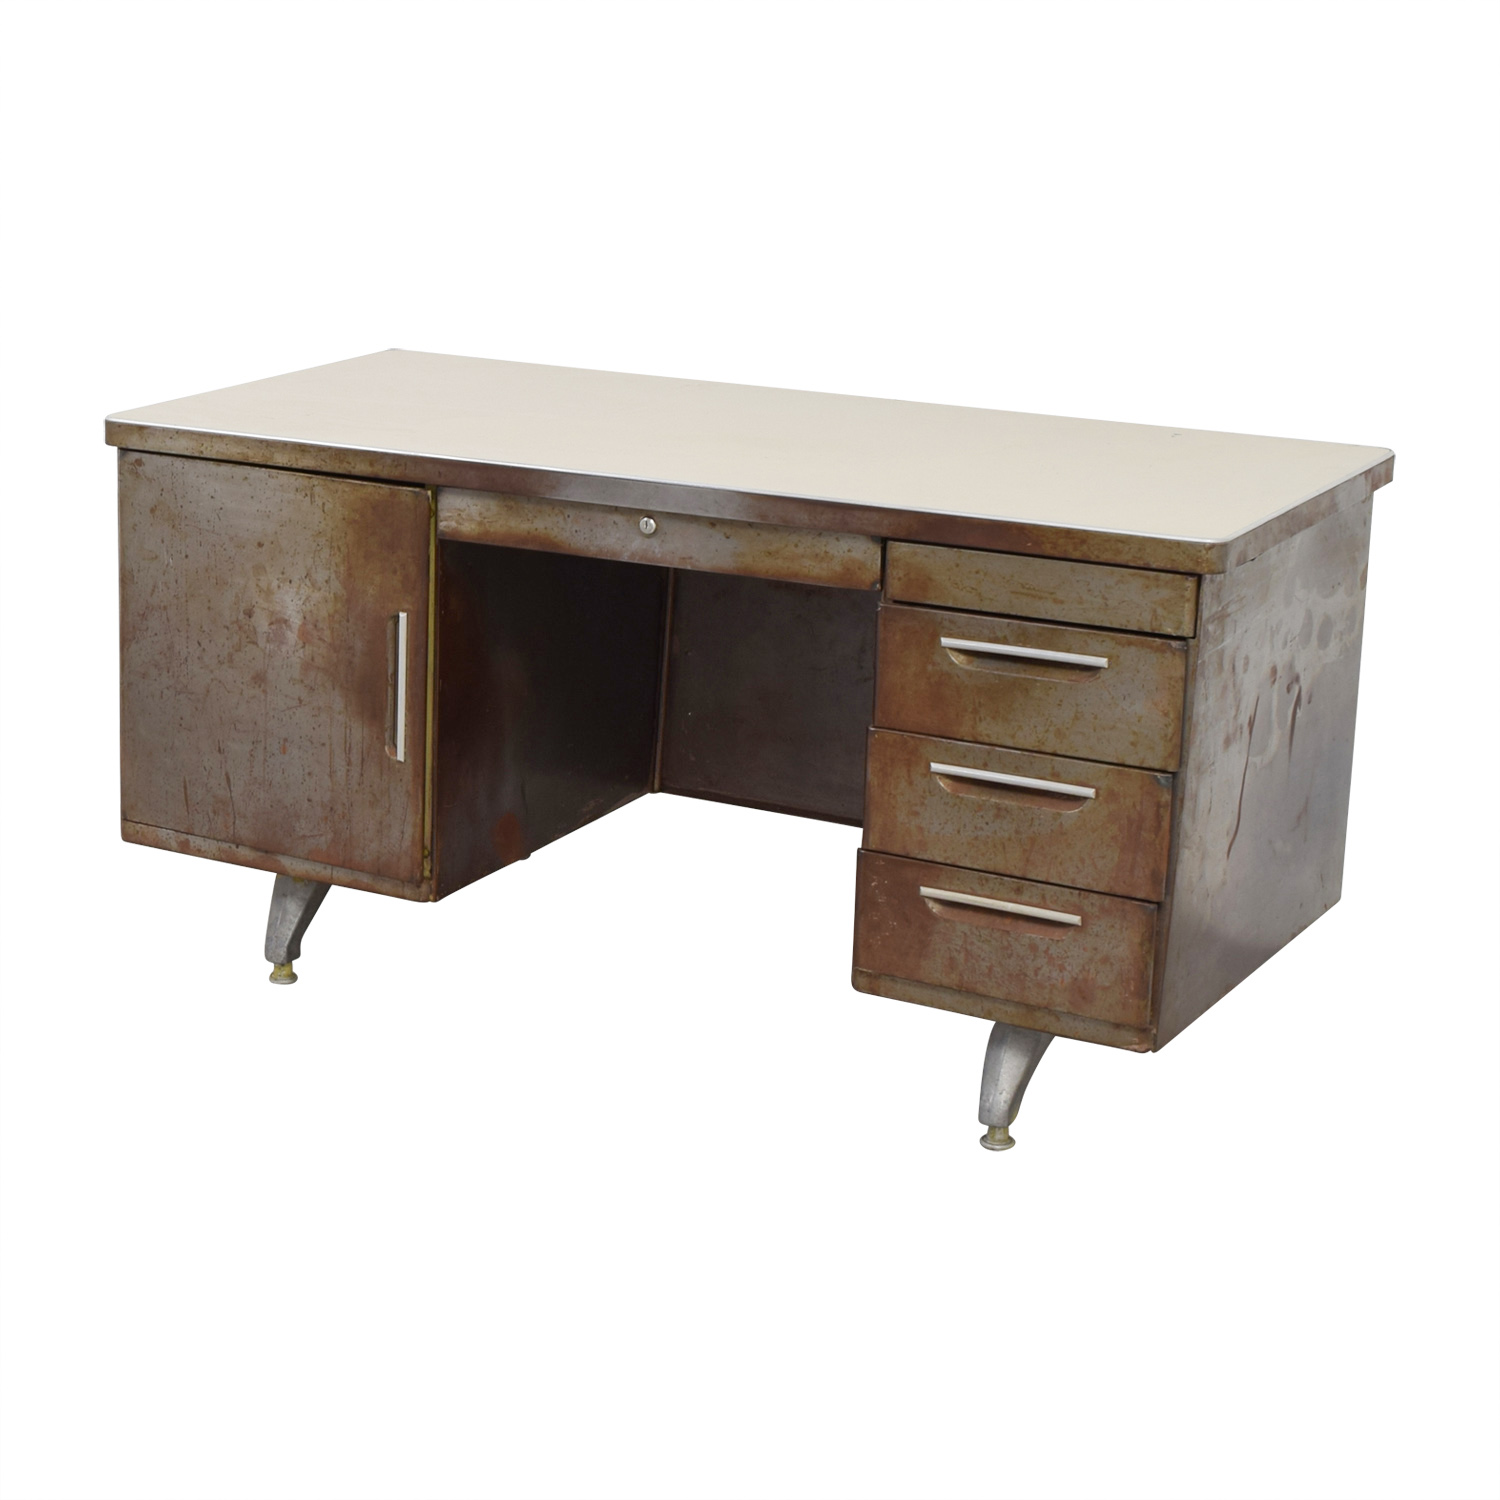 84% OFF - Shaw Walker Shaw Walker Rustic Metal Desk / Tables